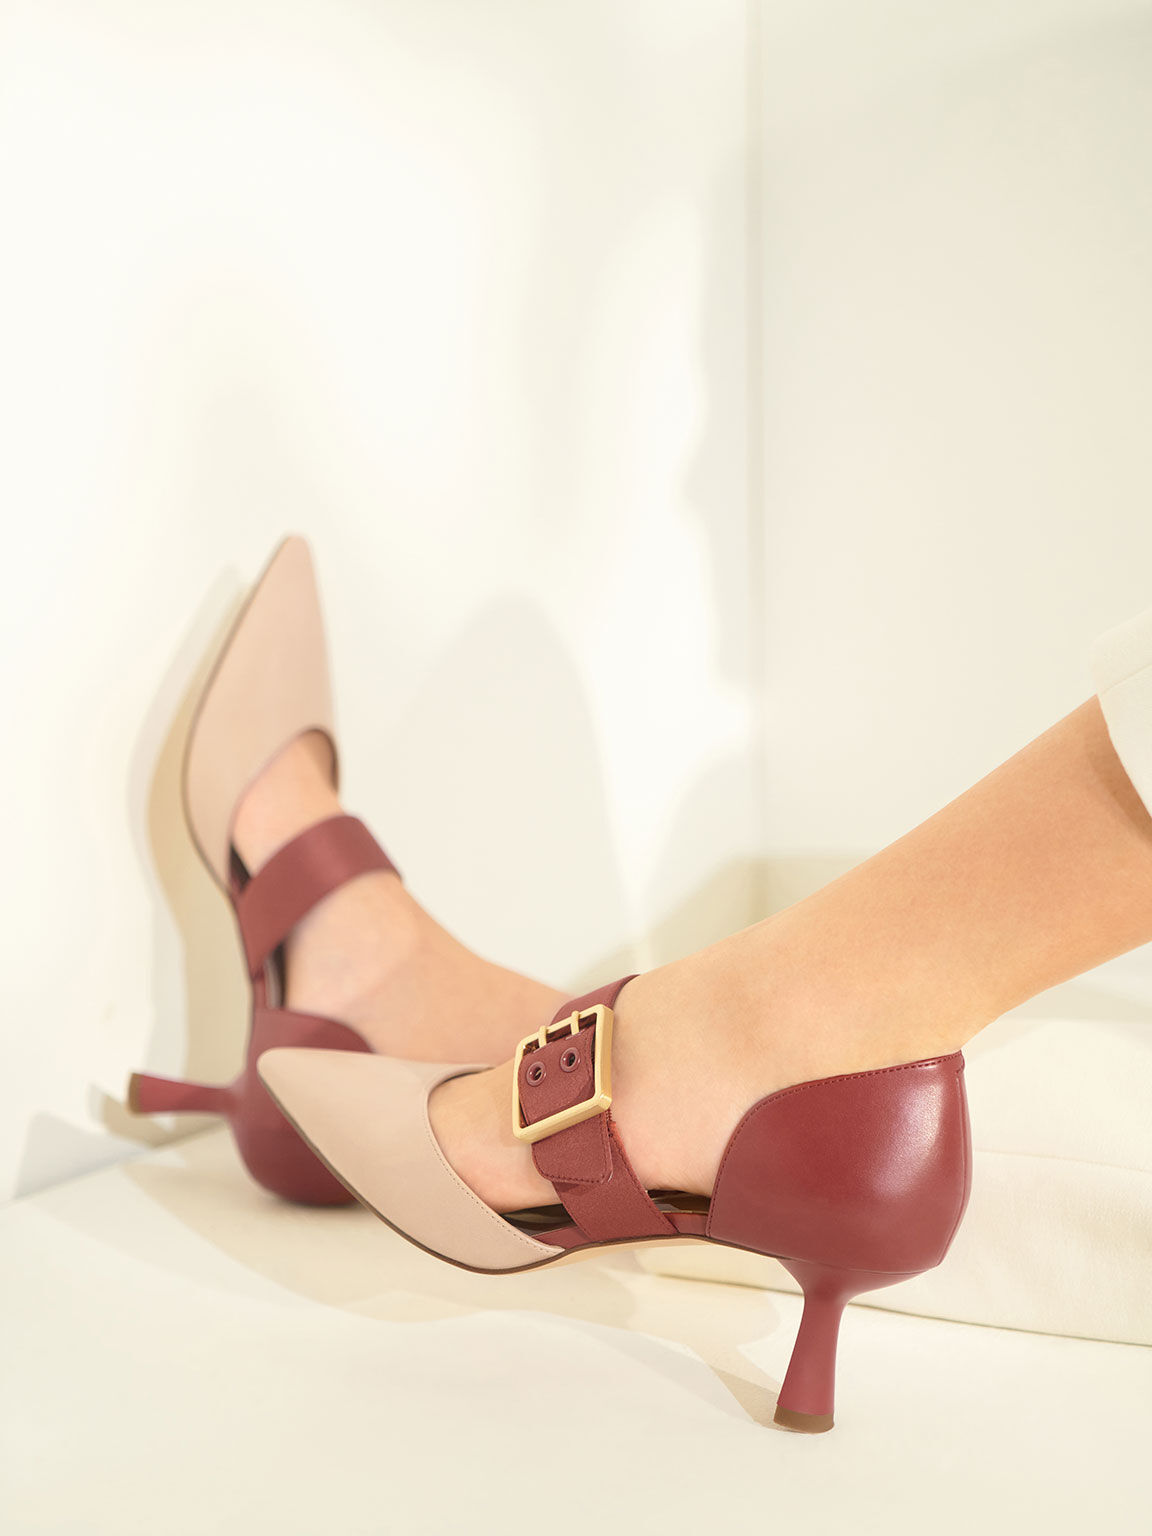 Oversized Buckle Pointed Toe Pumps, Brick, hi-res